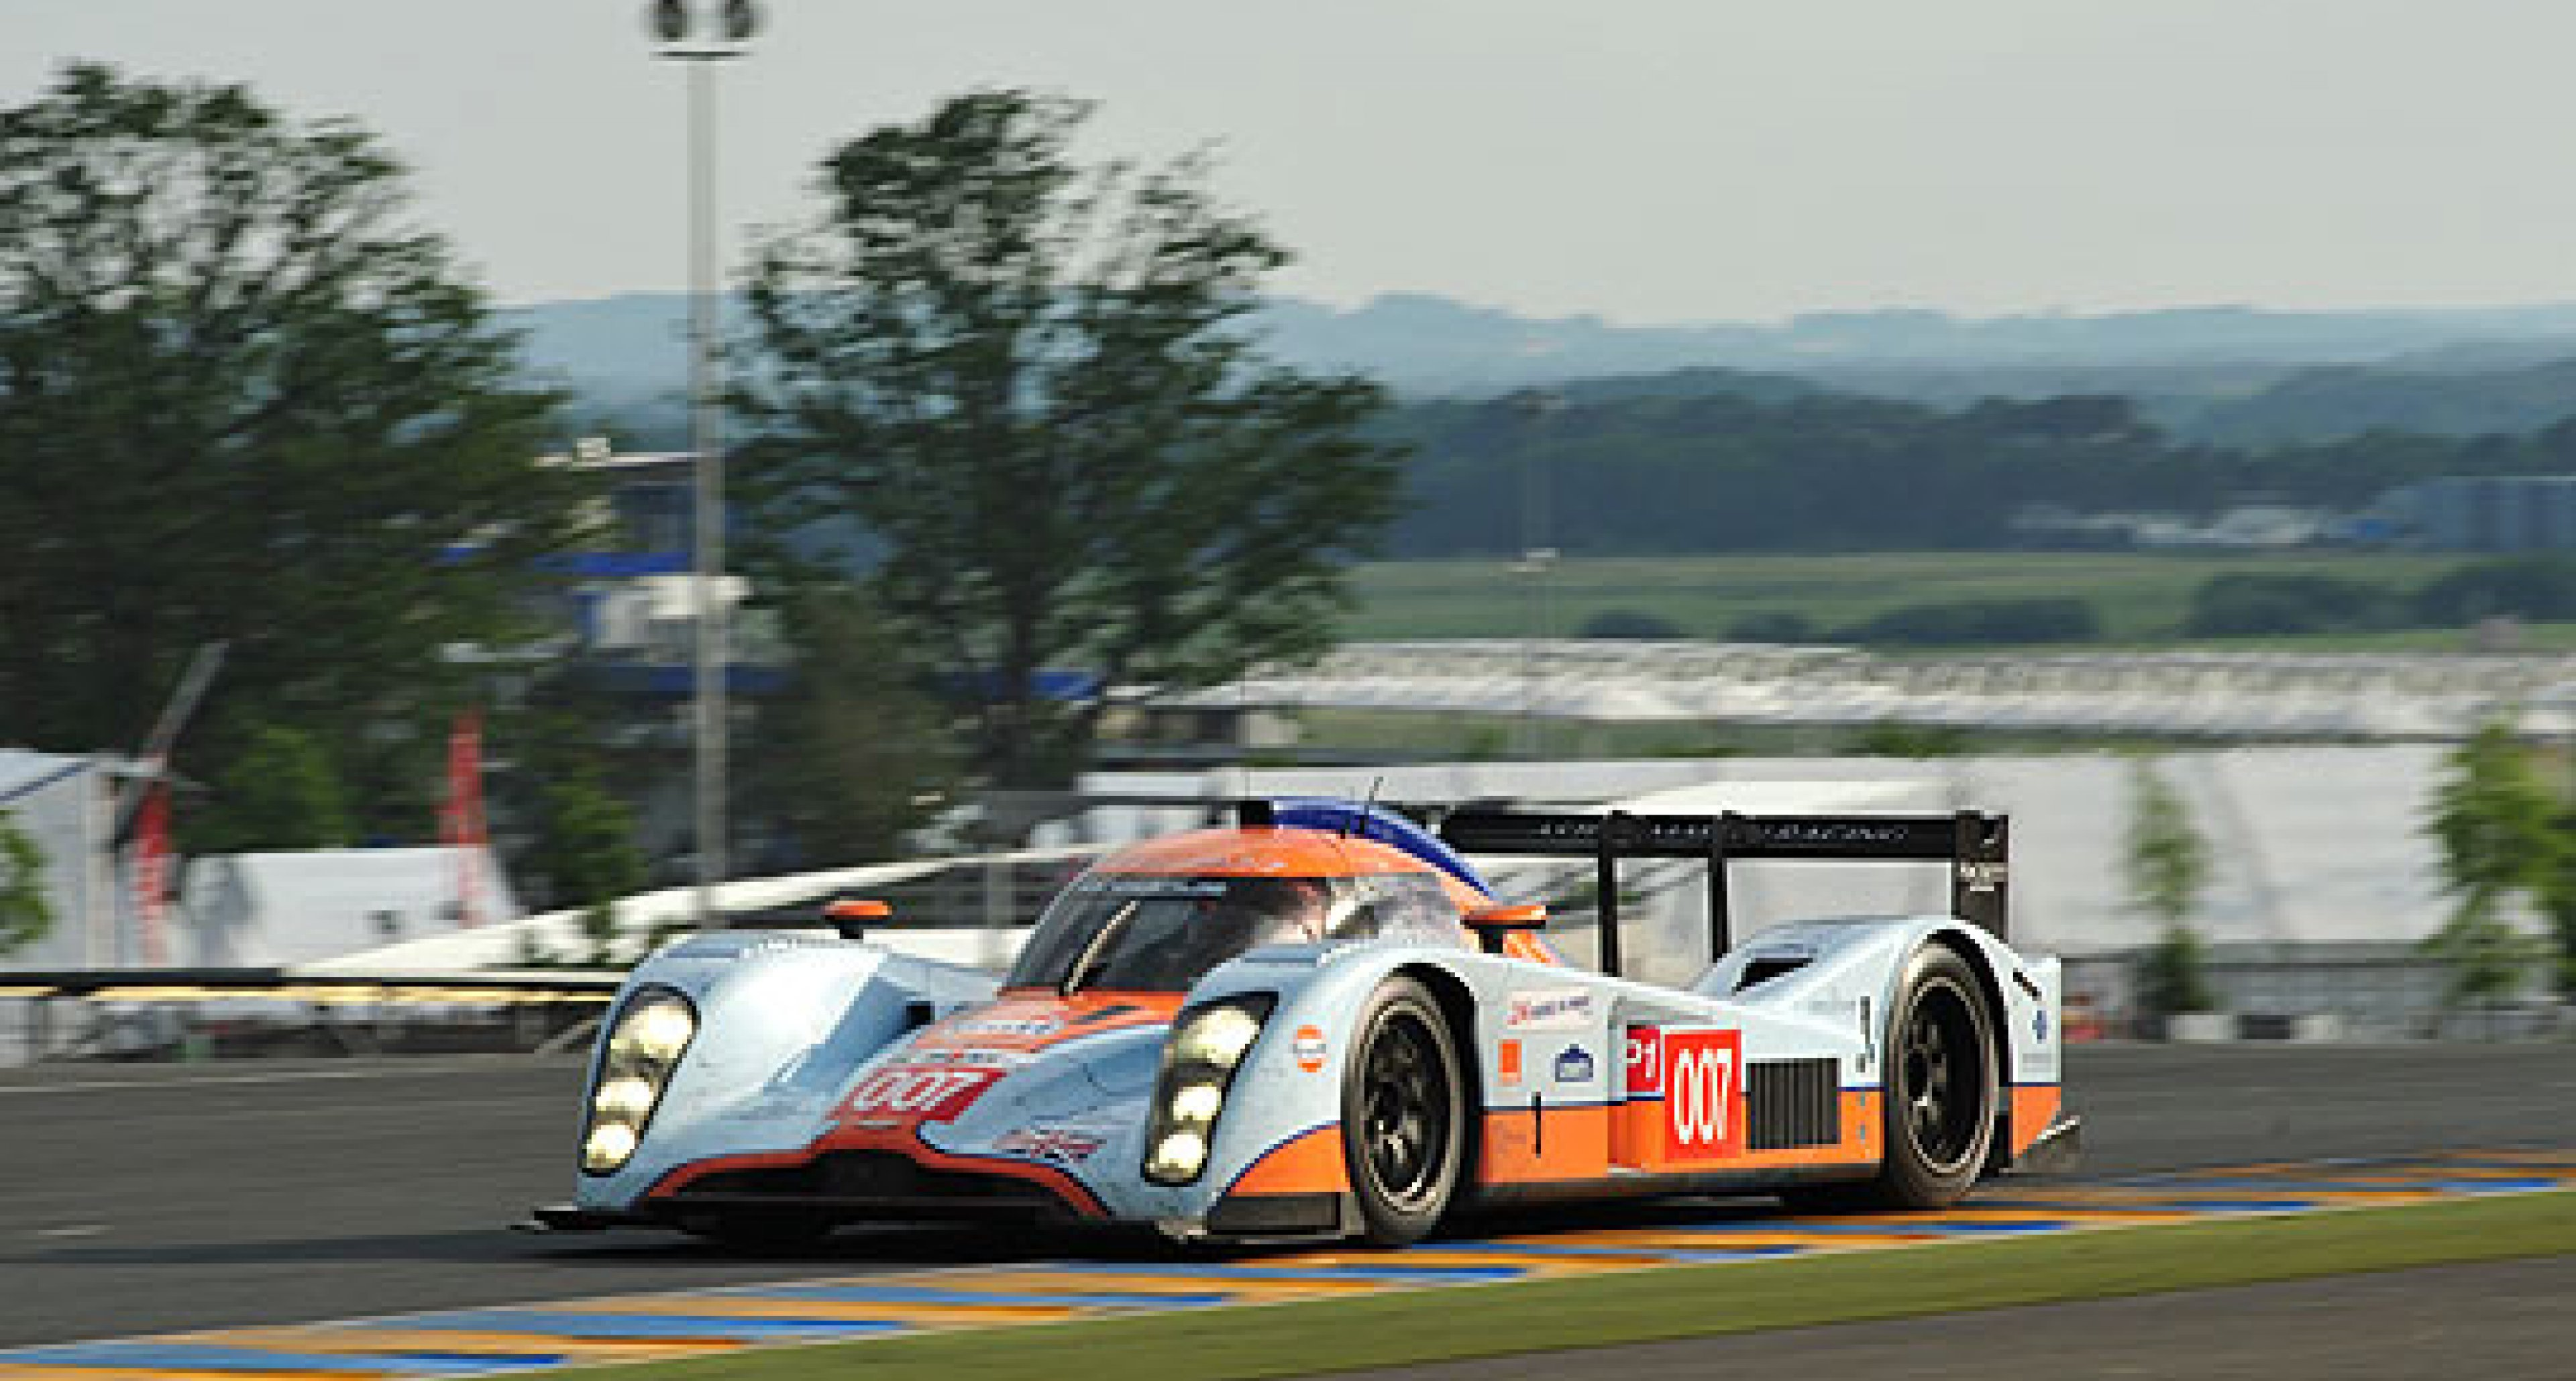 Aston Martin Racing at Le Mans 2010: Not This Time